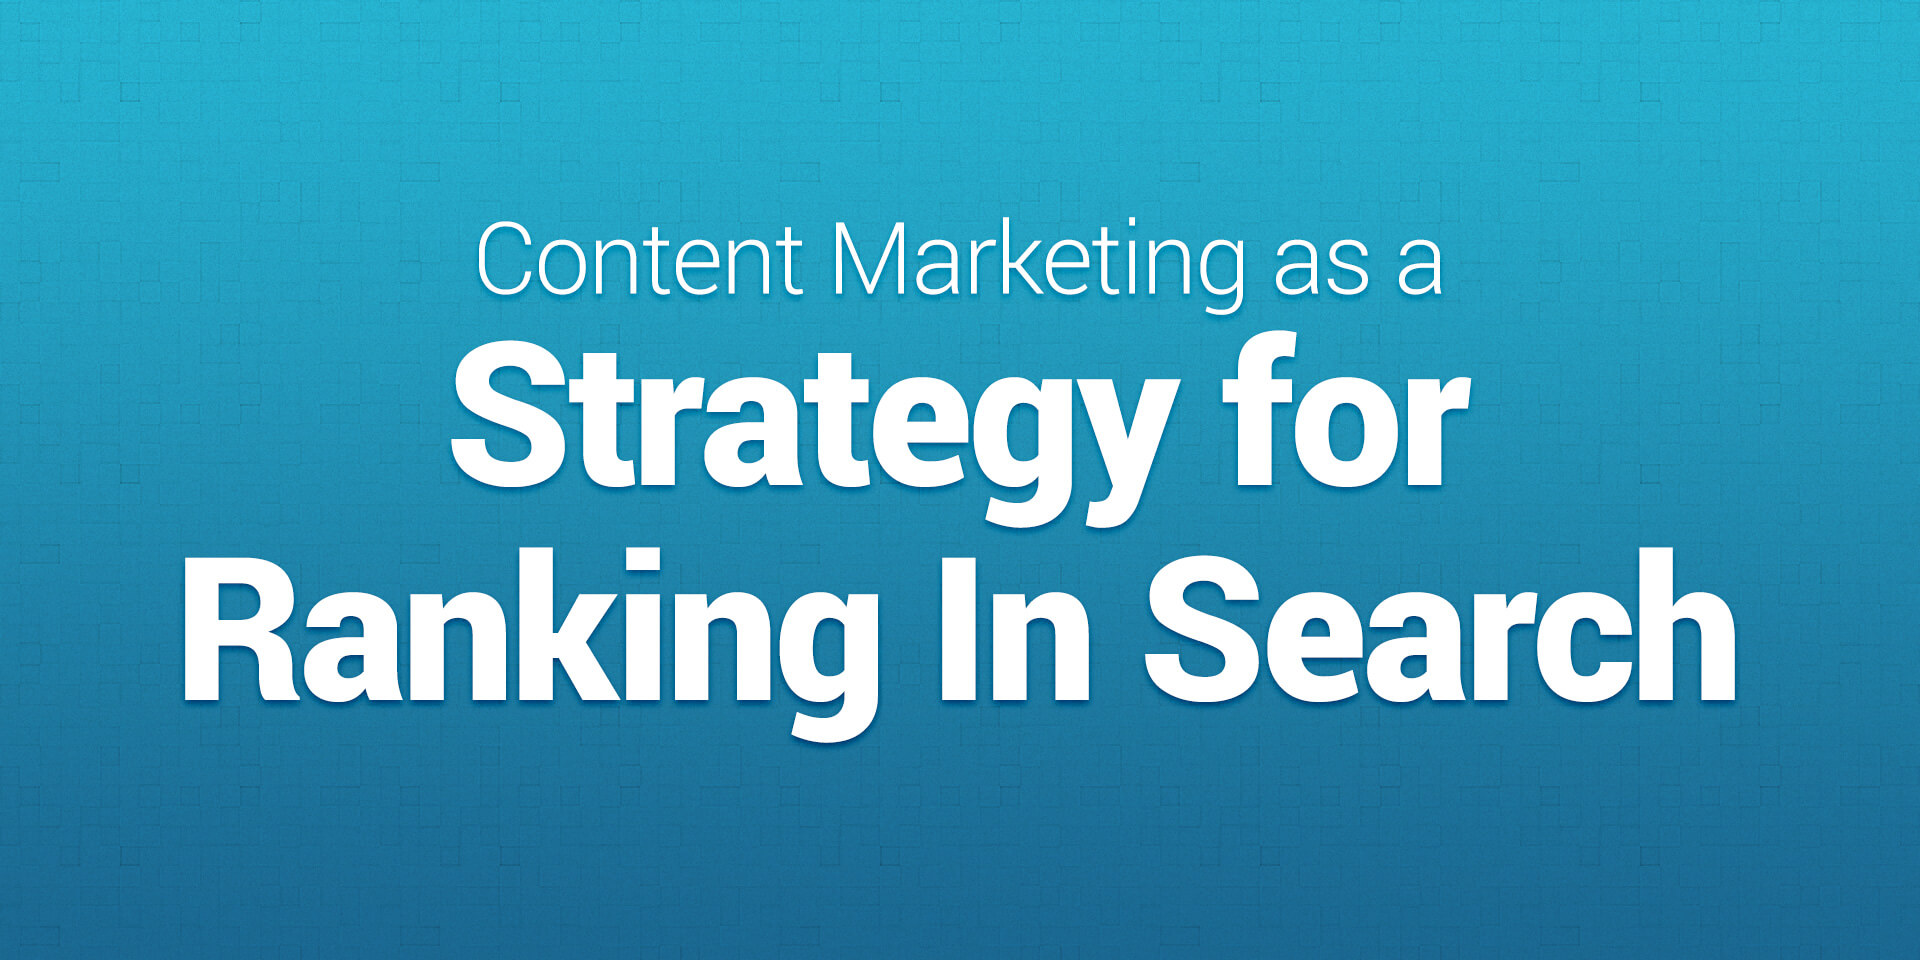 Content Marketing as a Strategy for Ranking in Search